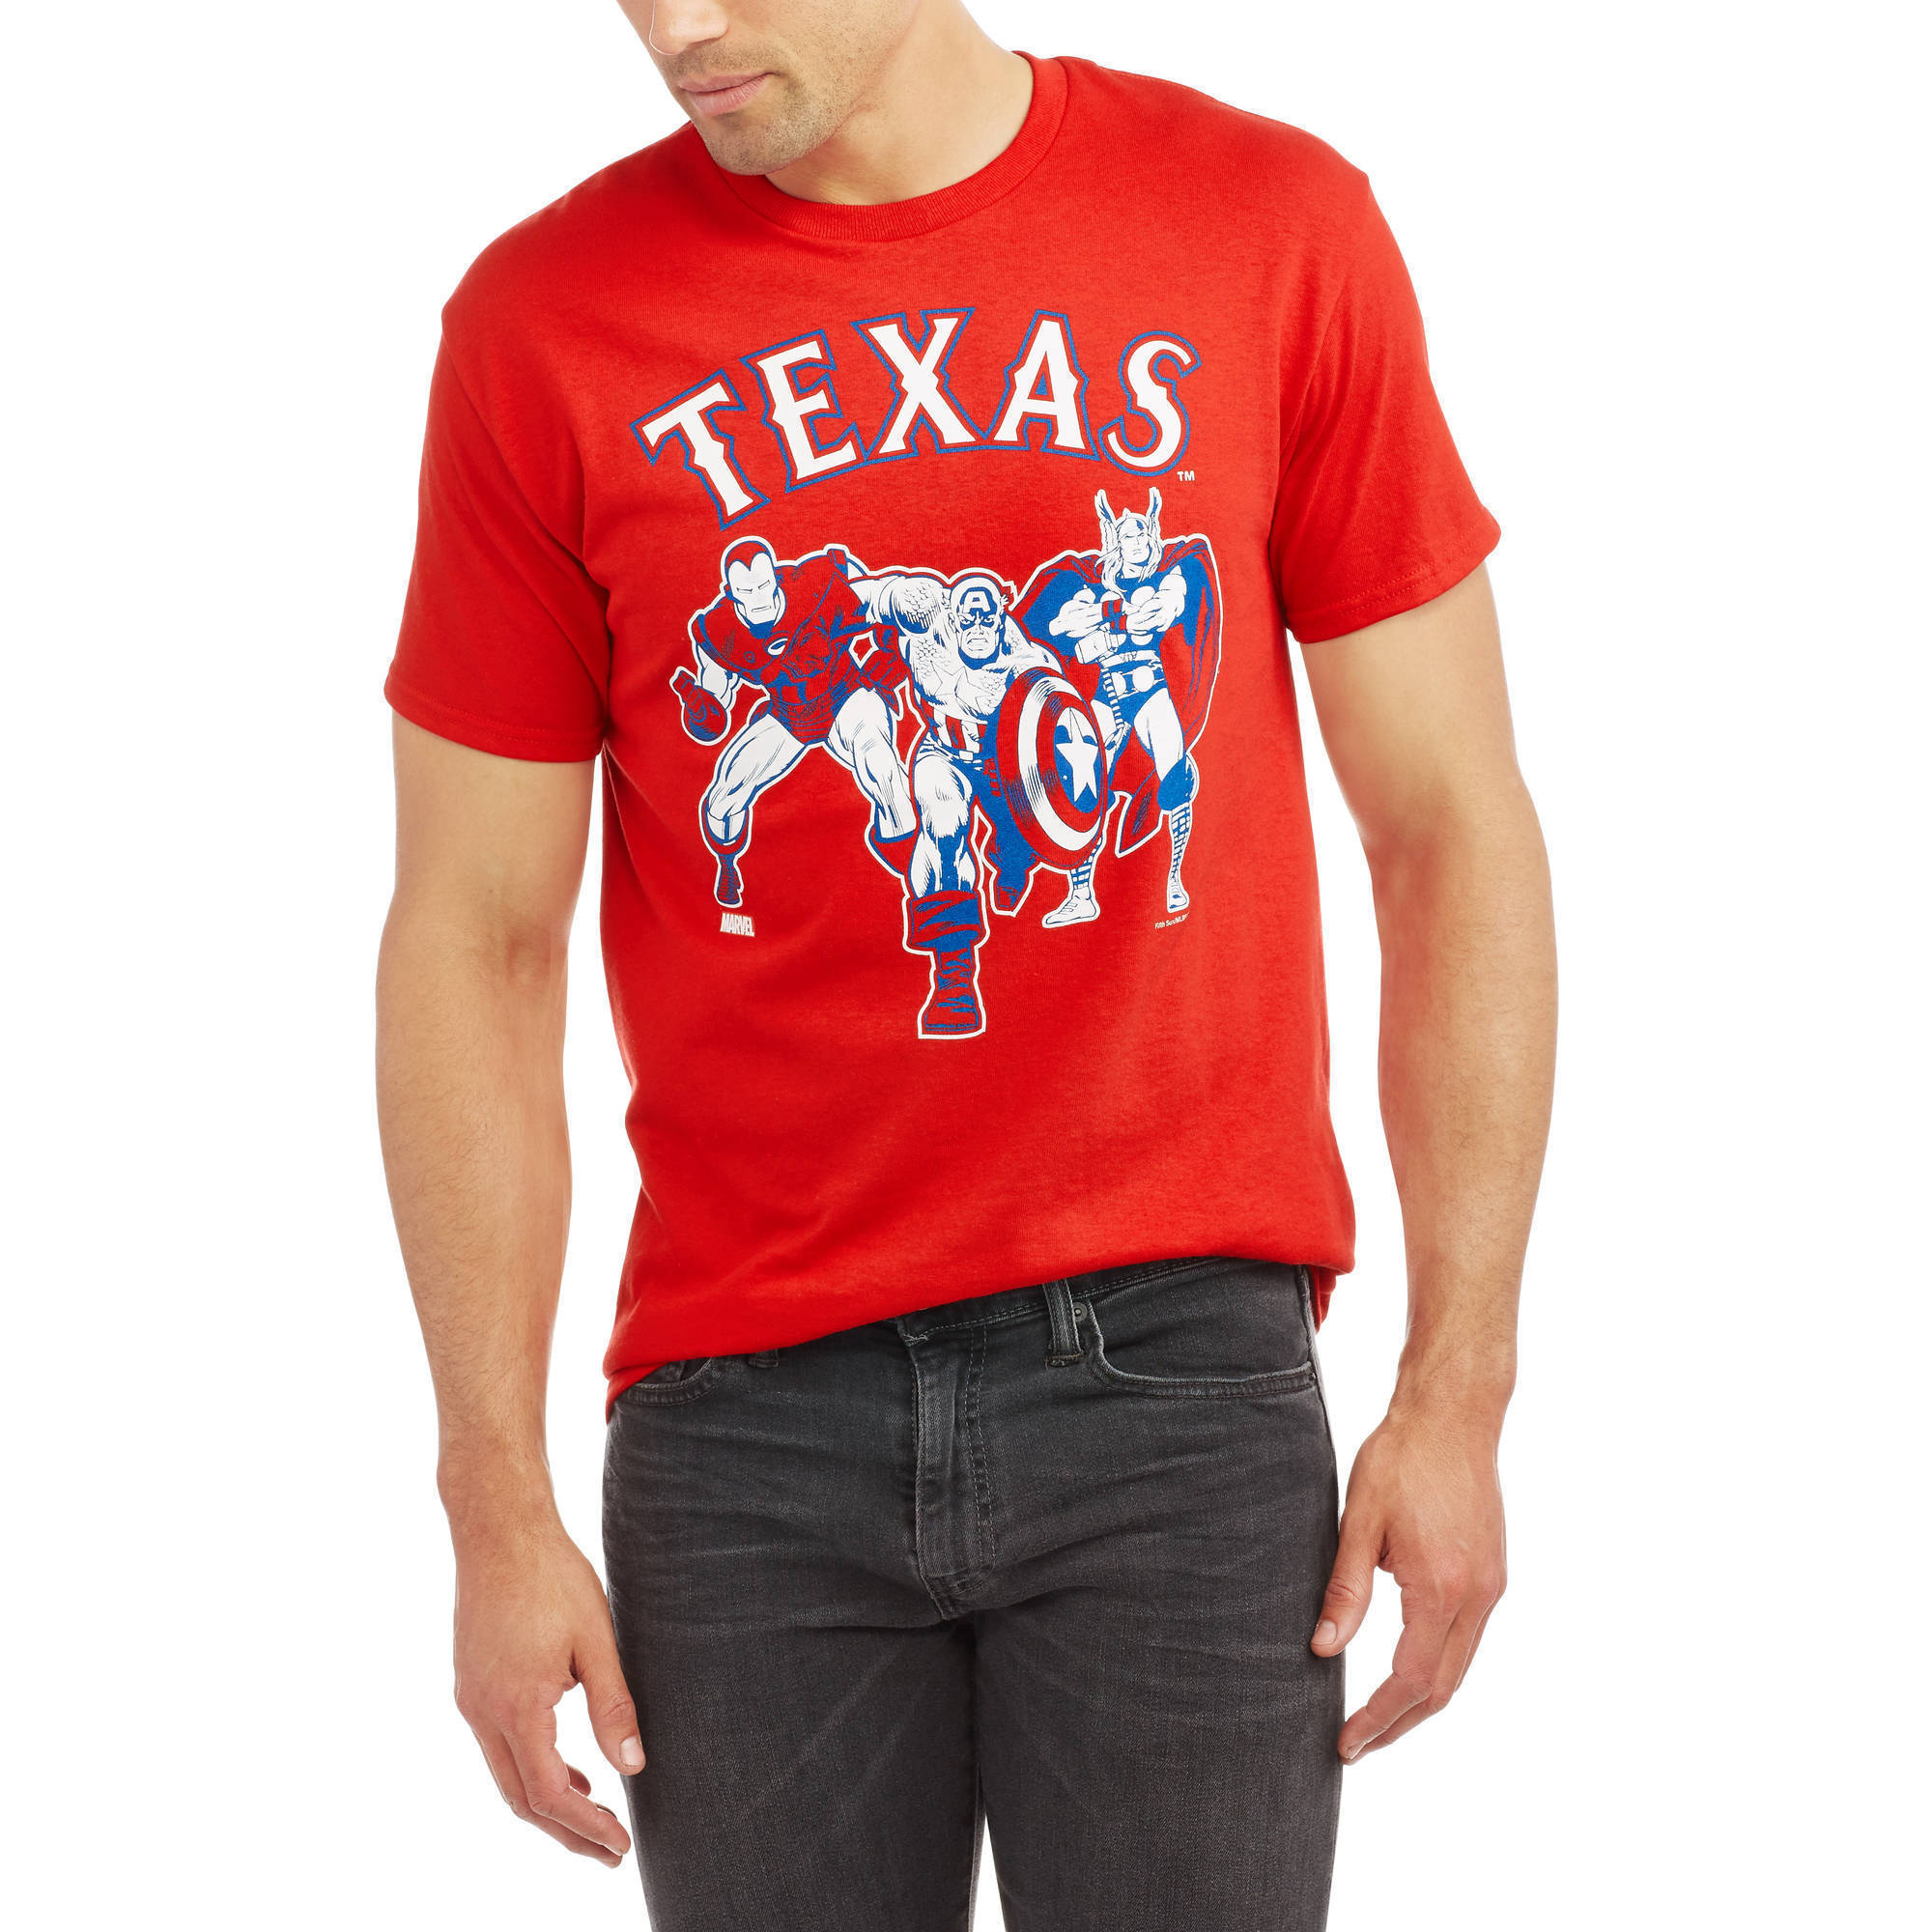 MLB Texas Rangers Big Men's Marvel Super Hero Tee, 2XL